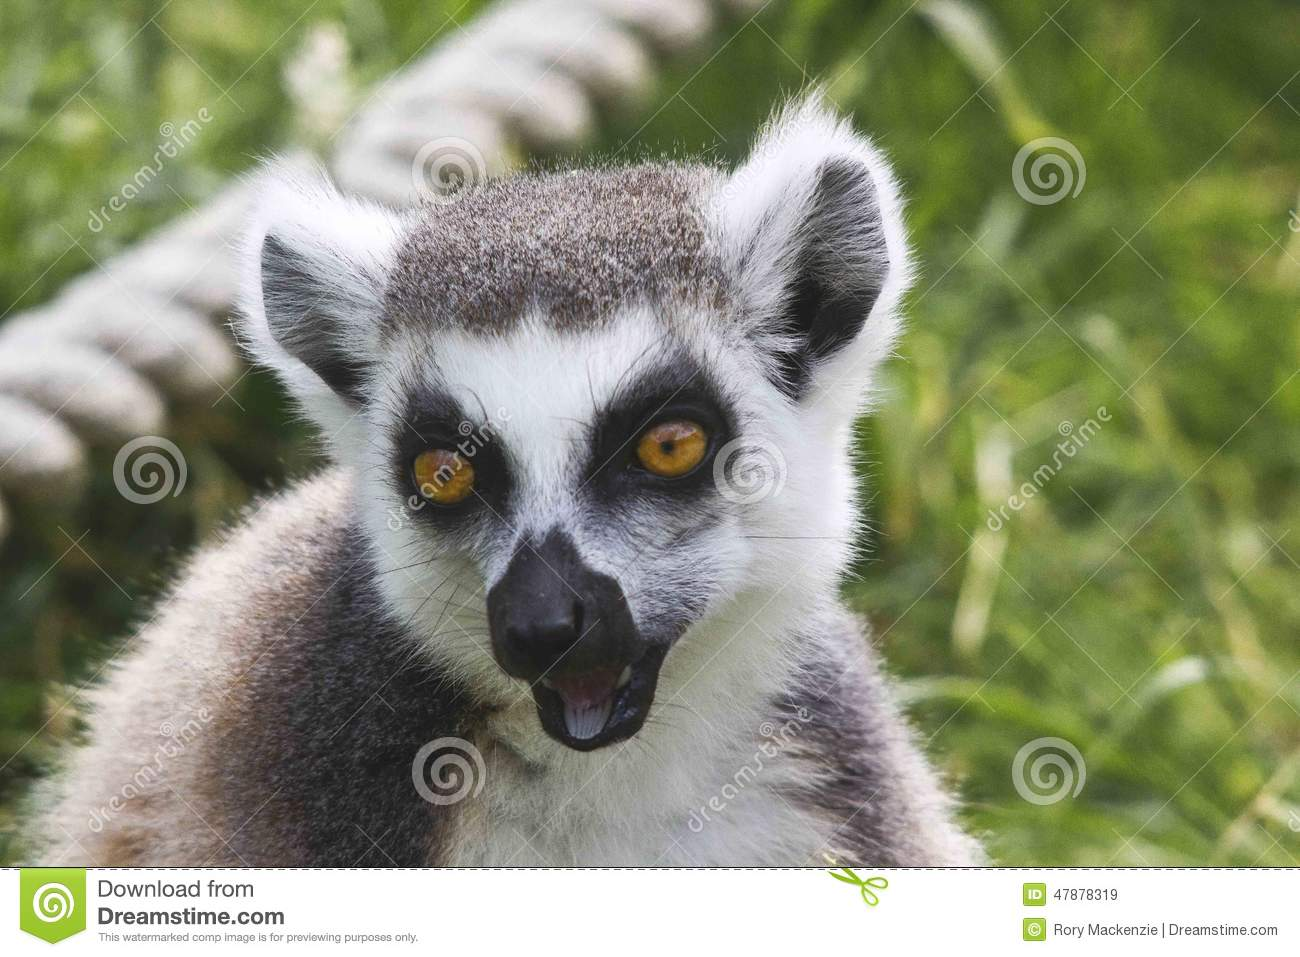 Lemur Laugh Stock Photo - Image: 47878319 - photo#47